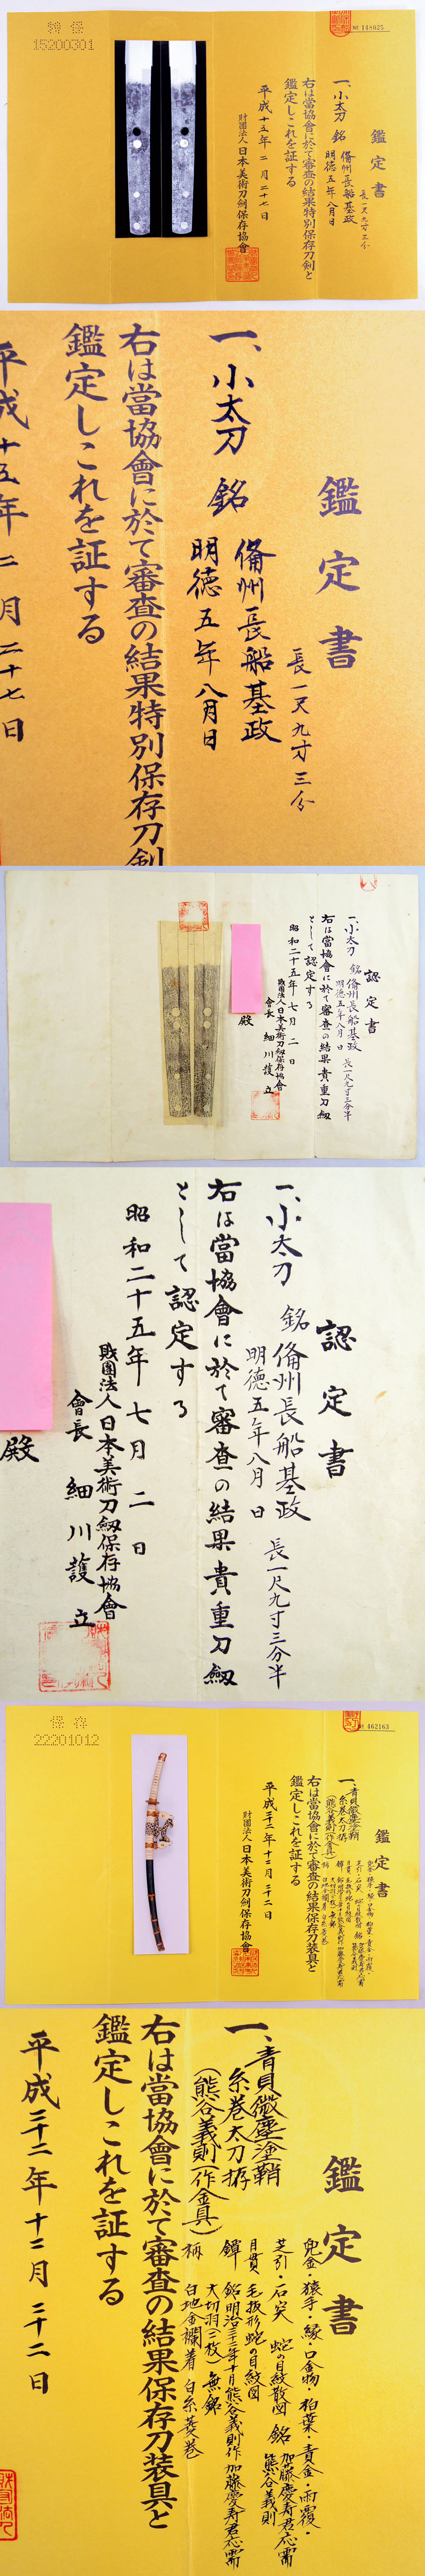 備州長船基政 Picture of Certificate